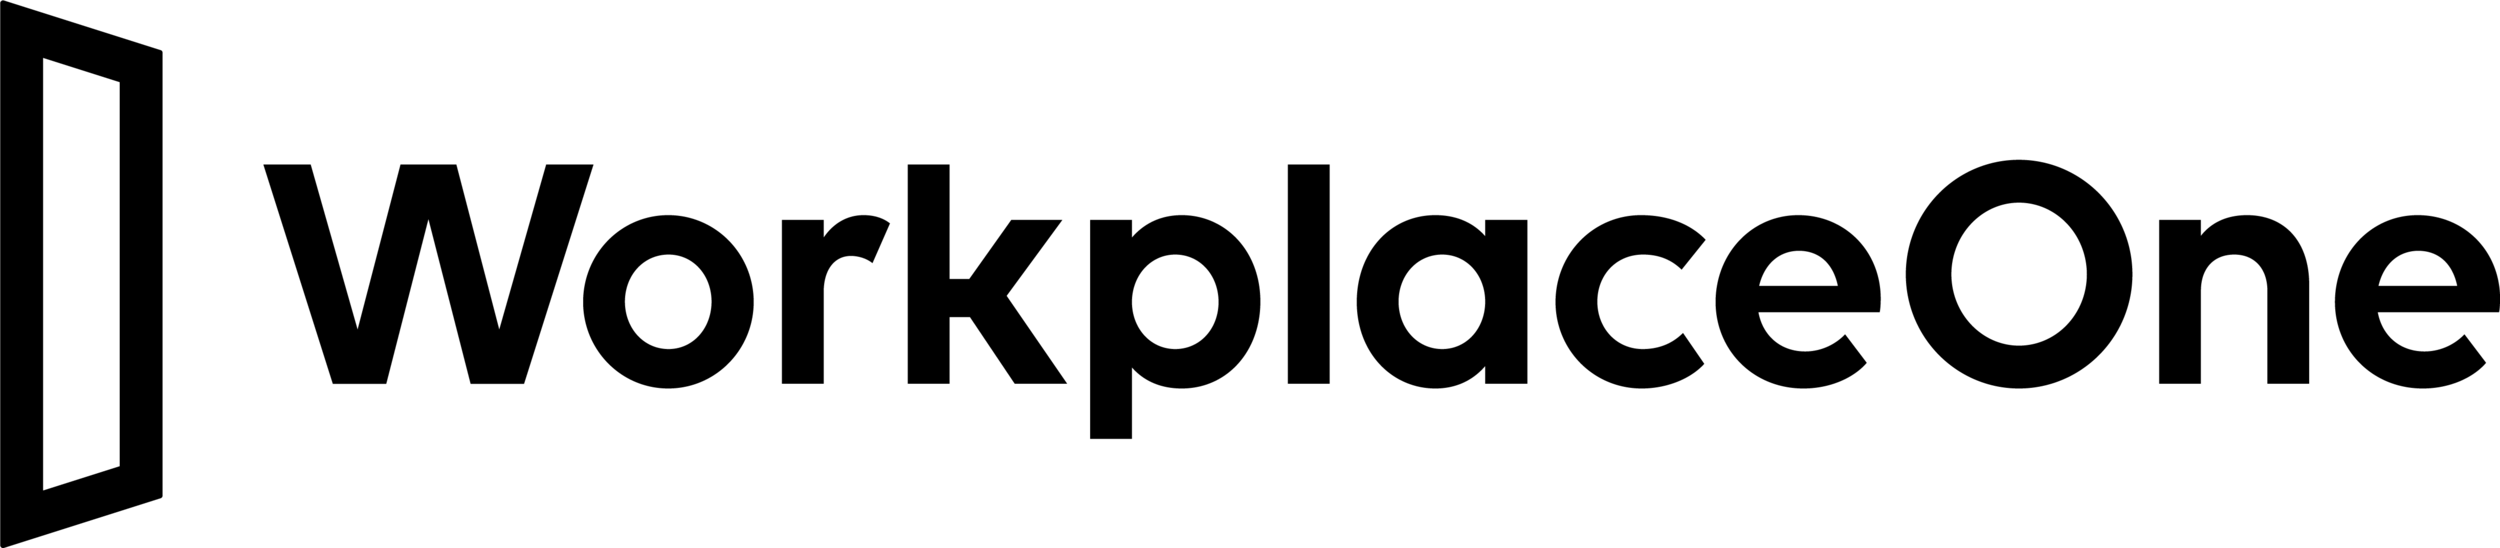 WorkplaceOne-LOGO.png